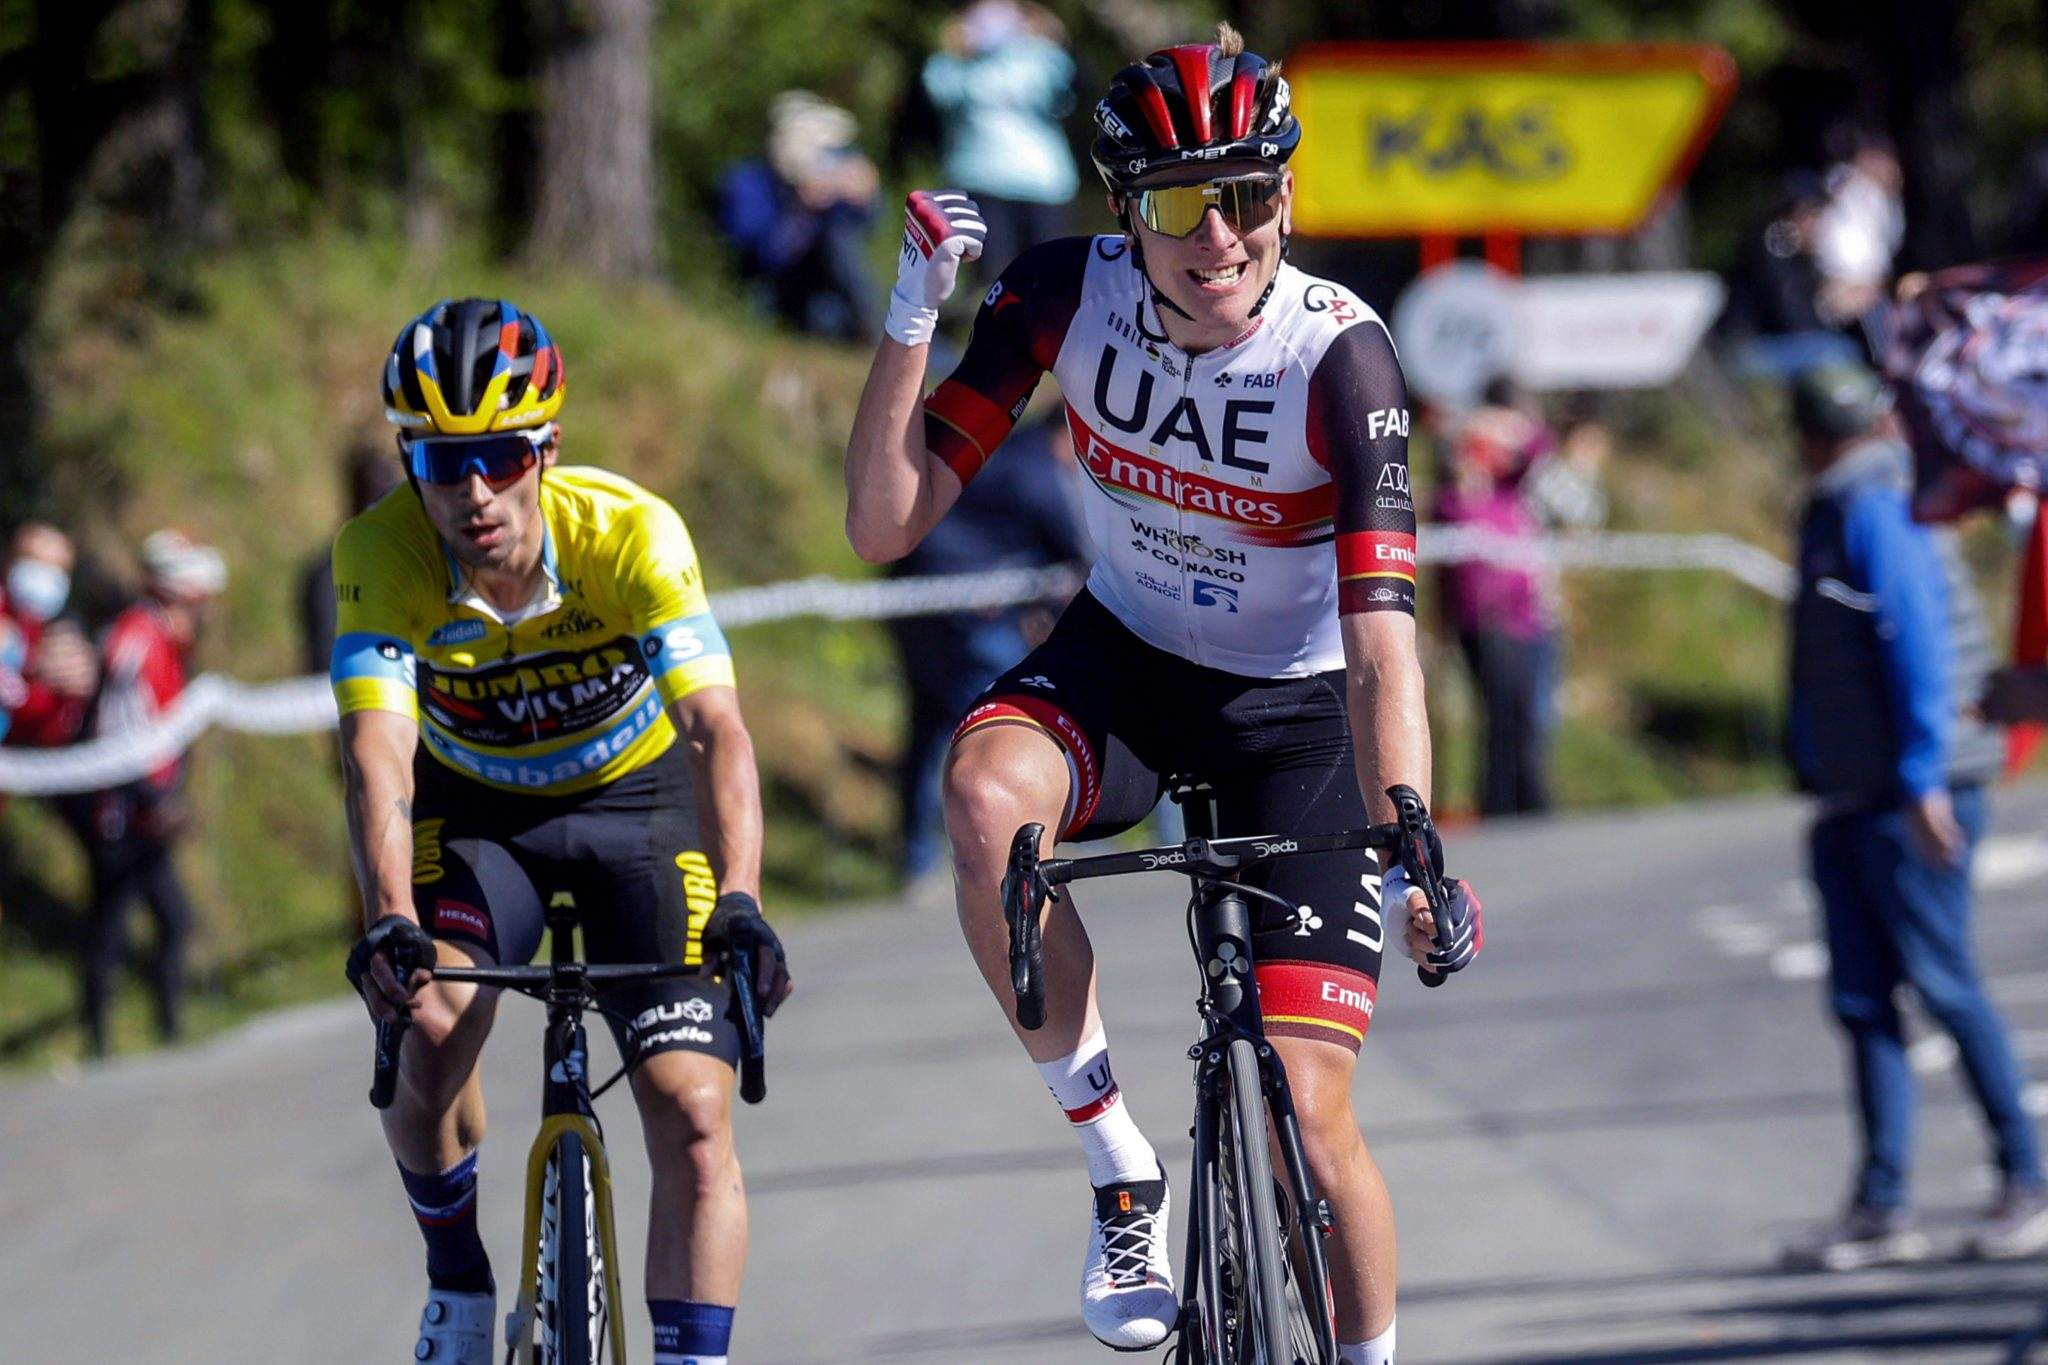 2021 ITZULIA BASQUE COUNTRY STAGE 3 RESULTS — POGACAR AND ROGLIC DUEL